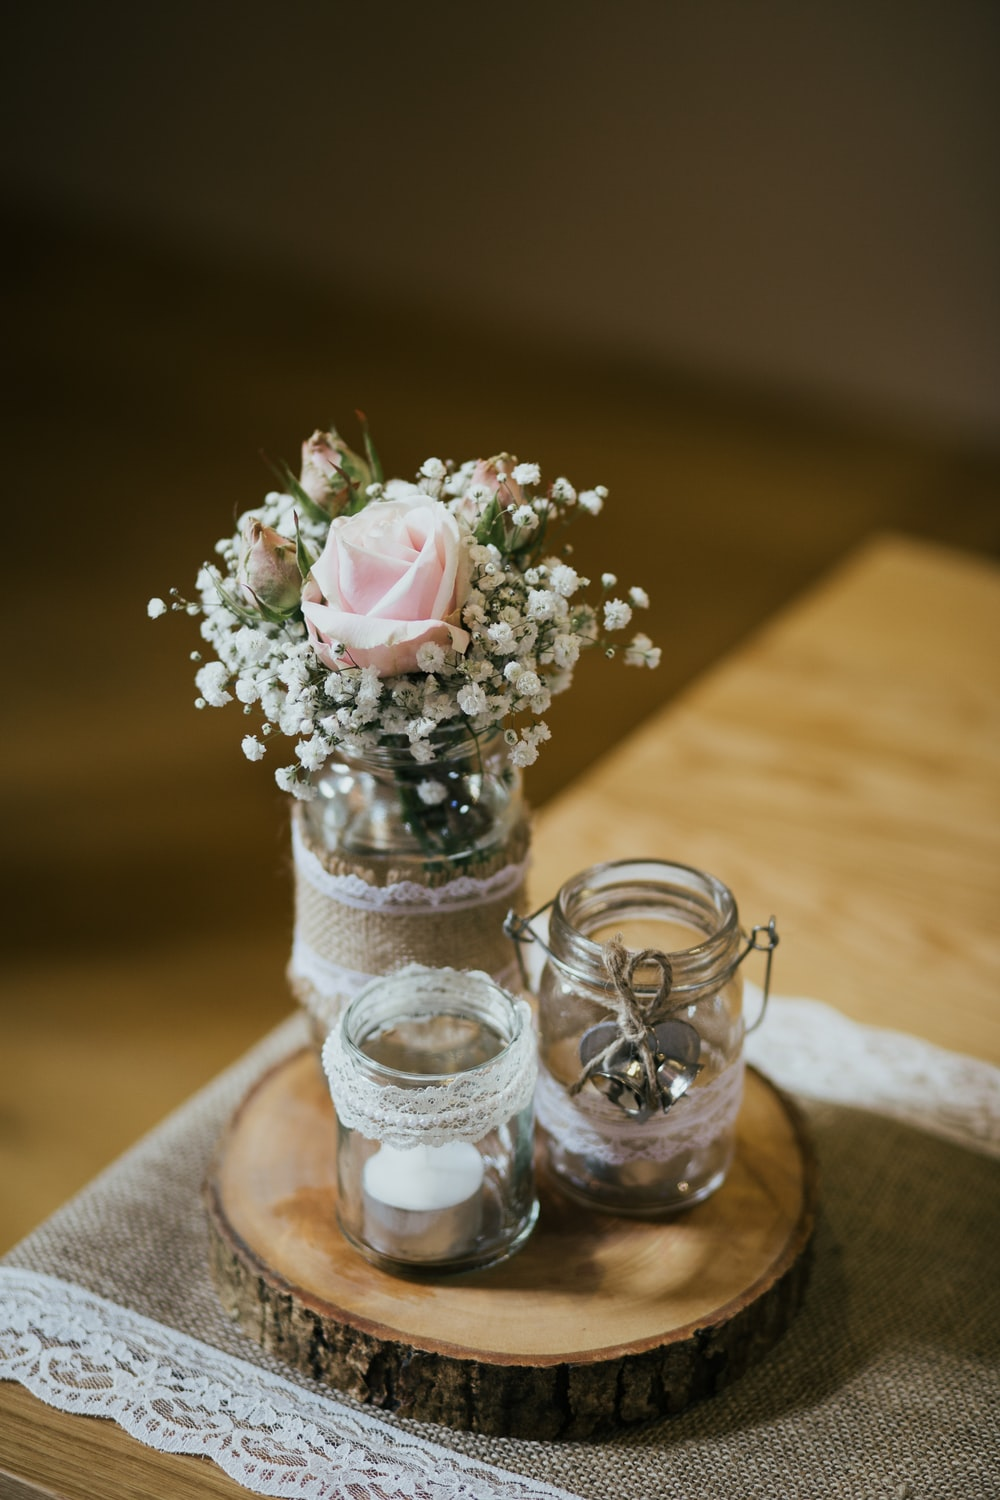 shallow focus photography of white and pink flowers in clear glass vase